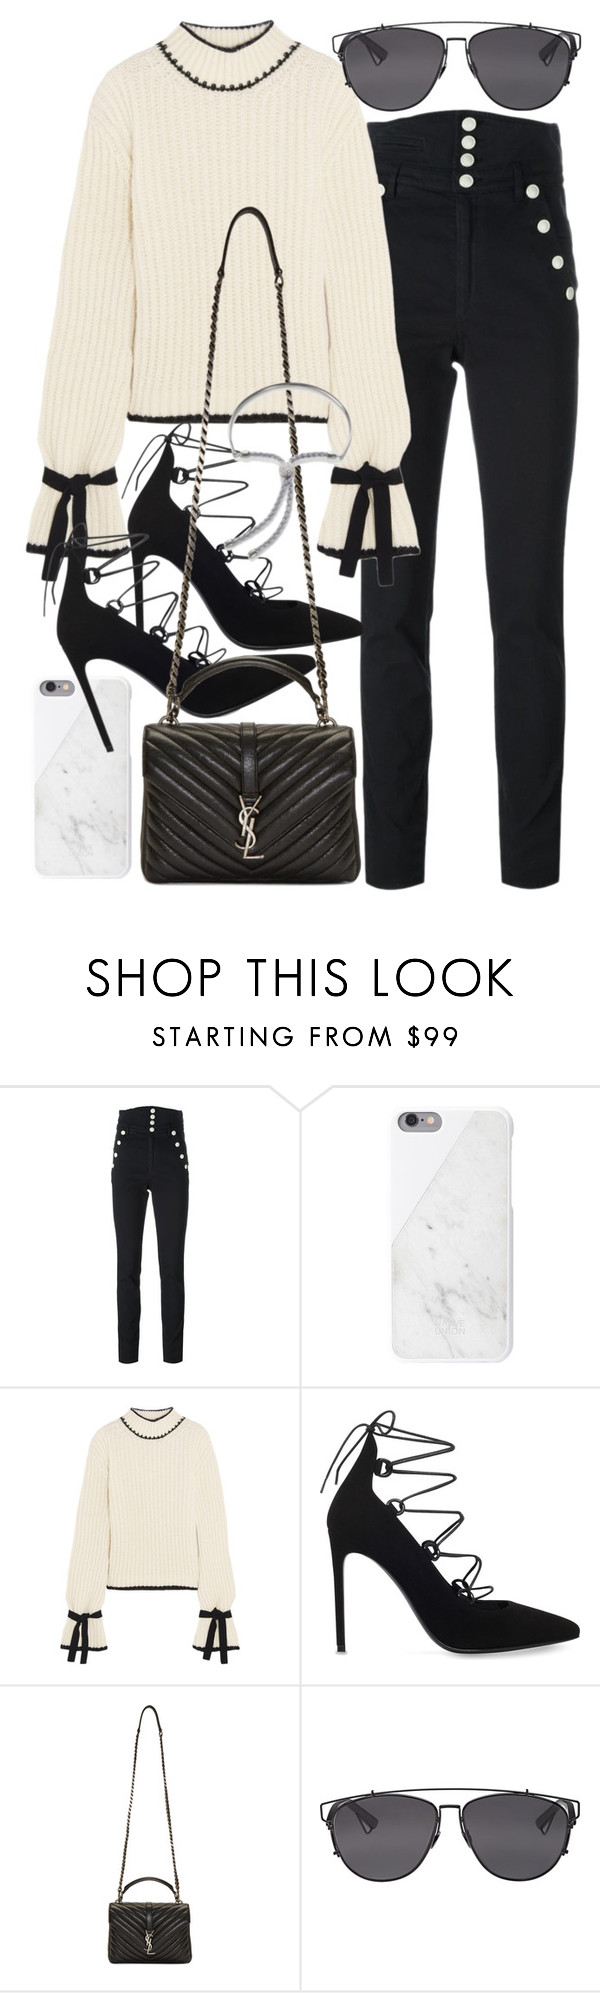 """""""Untitled #20629"""" by florencia95 ❤ liked on Polyvore featuring Isabel Marant, Native Union, J.W. Anderson, Yves Saint Laurent, Christian Dior and Monica Vinader"""